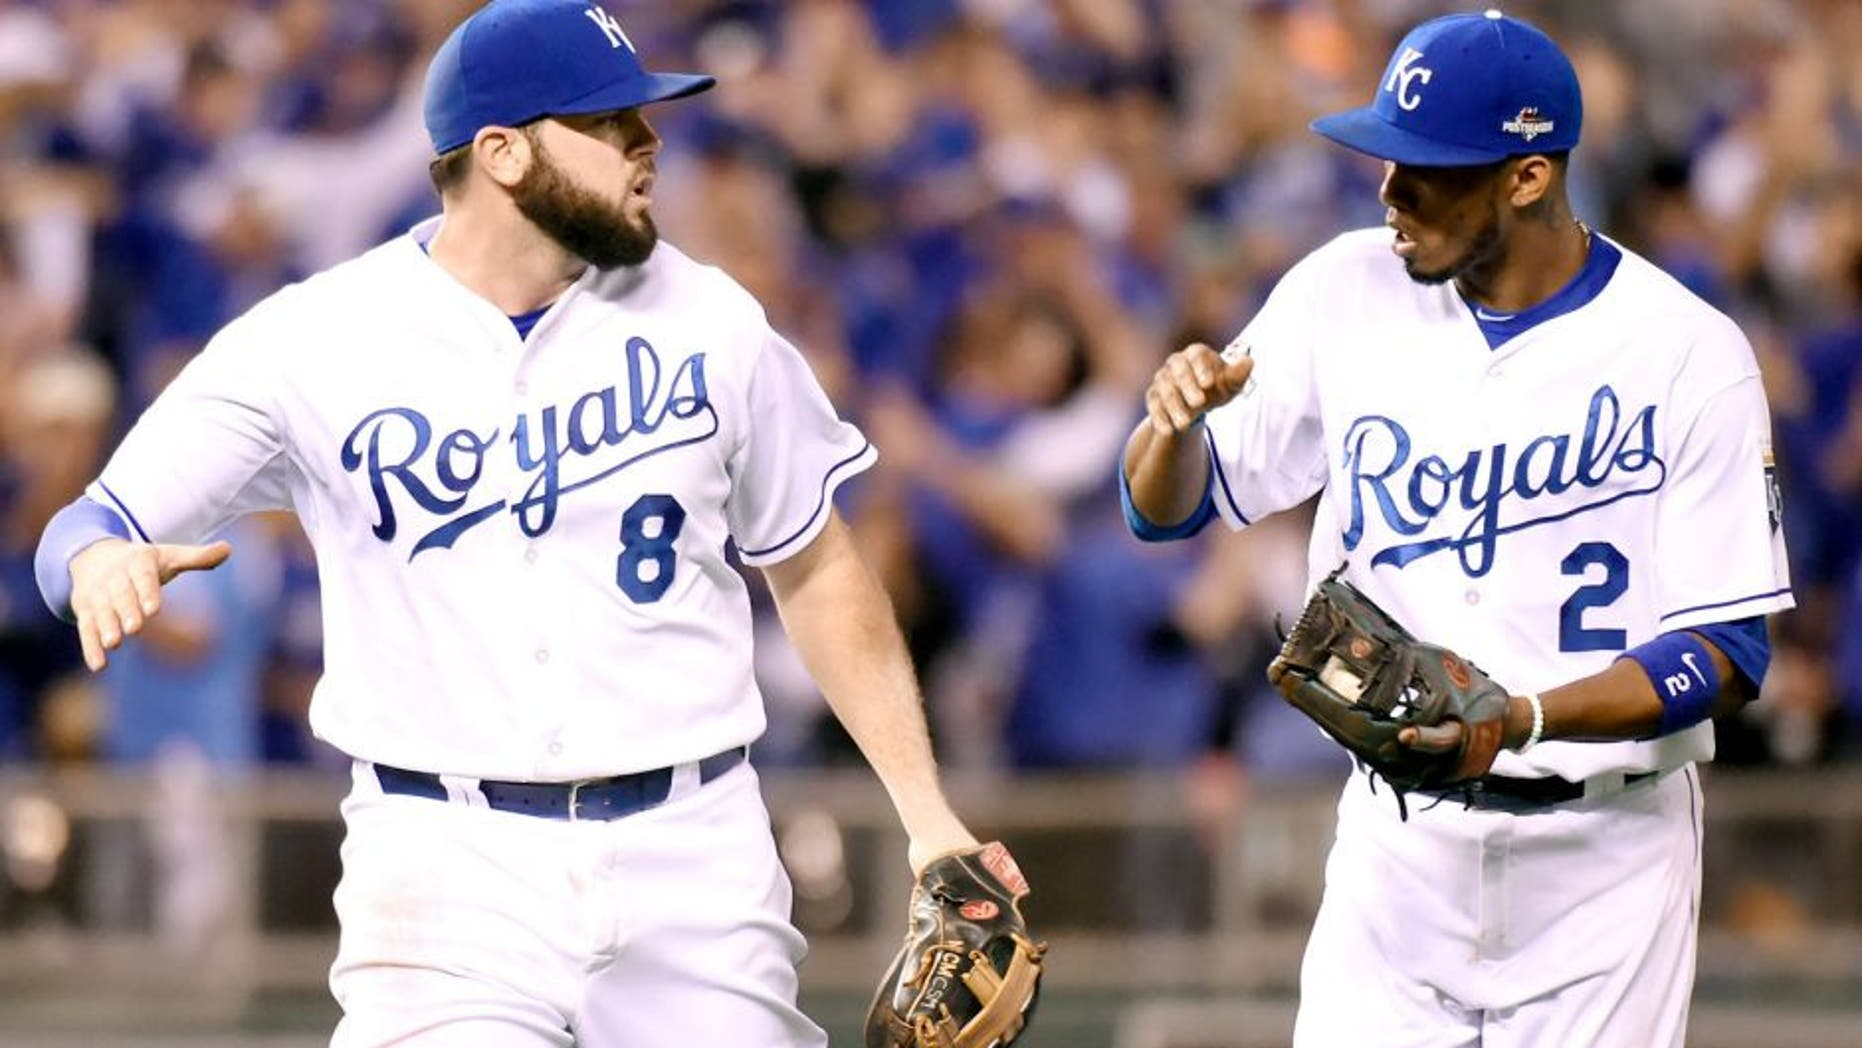 KANSAS CITY, MO - OCTOBER 23: Mike Moustakas #8 and Alcides Escobar #2 of the Kansas City Royals celebrate the end of an inning during Game 6 of the ALCS against the Toronto Blue Jays at Kauffman Stadium on Friday, October 23, 2015 in Kansas City Missouri. (Photo by LG Patterson/MLB Photos via Getty Images)